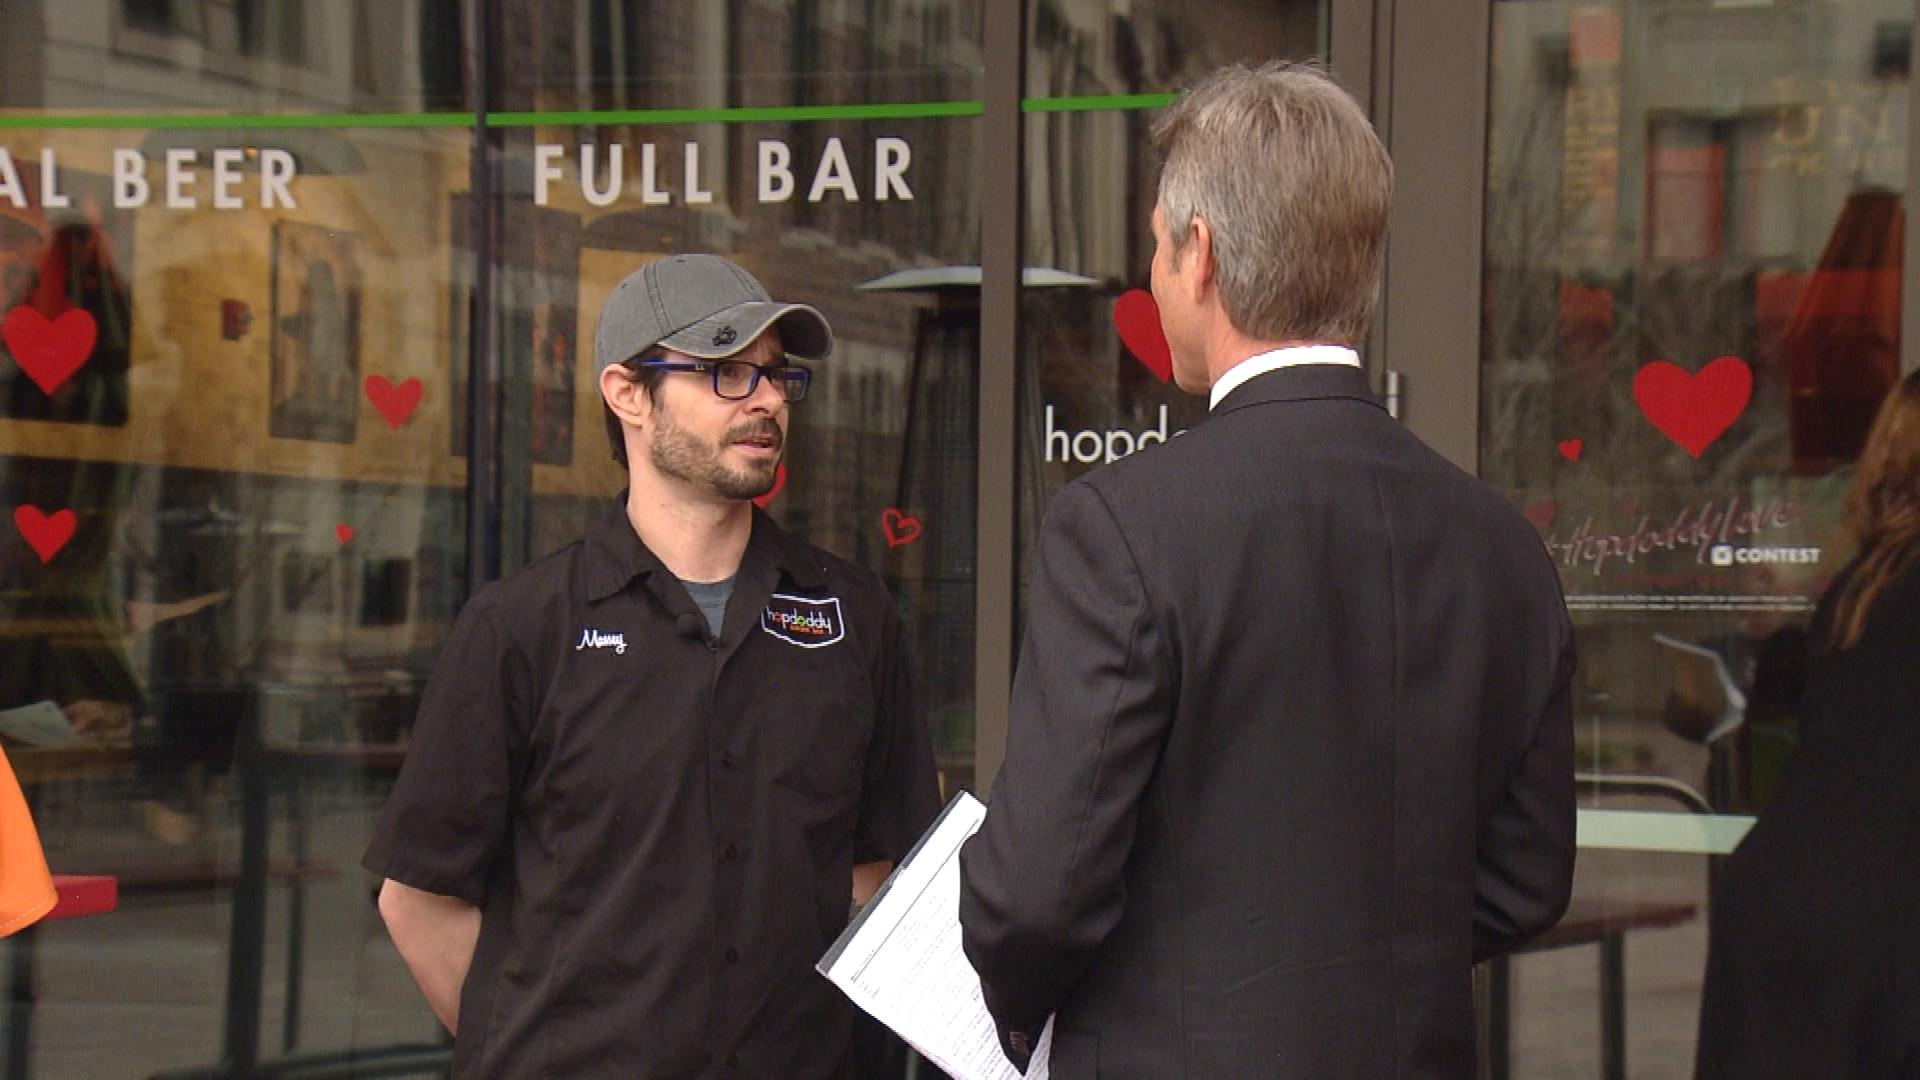 Chris Massey with the Hopdoddy Burger Bar is interviewed by CBS4's Tom Mustin (credit: CBS)